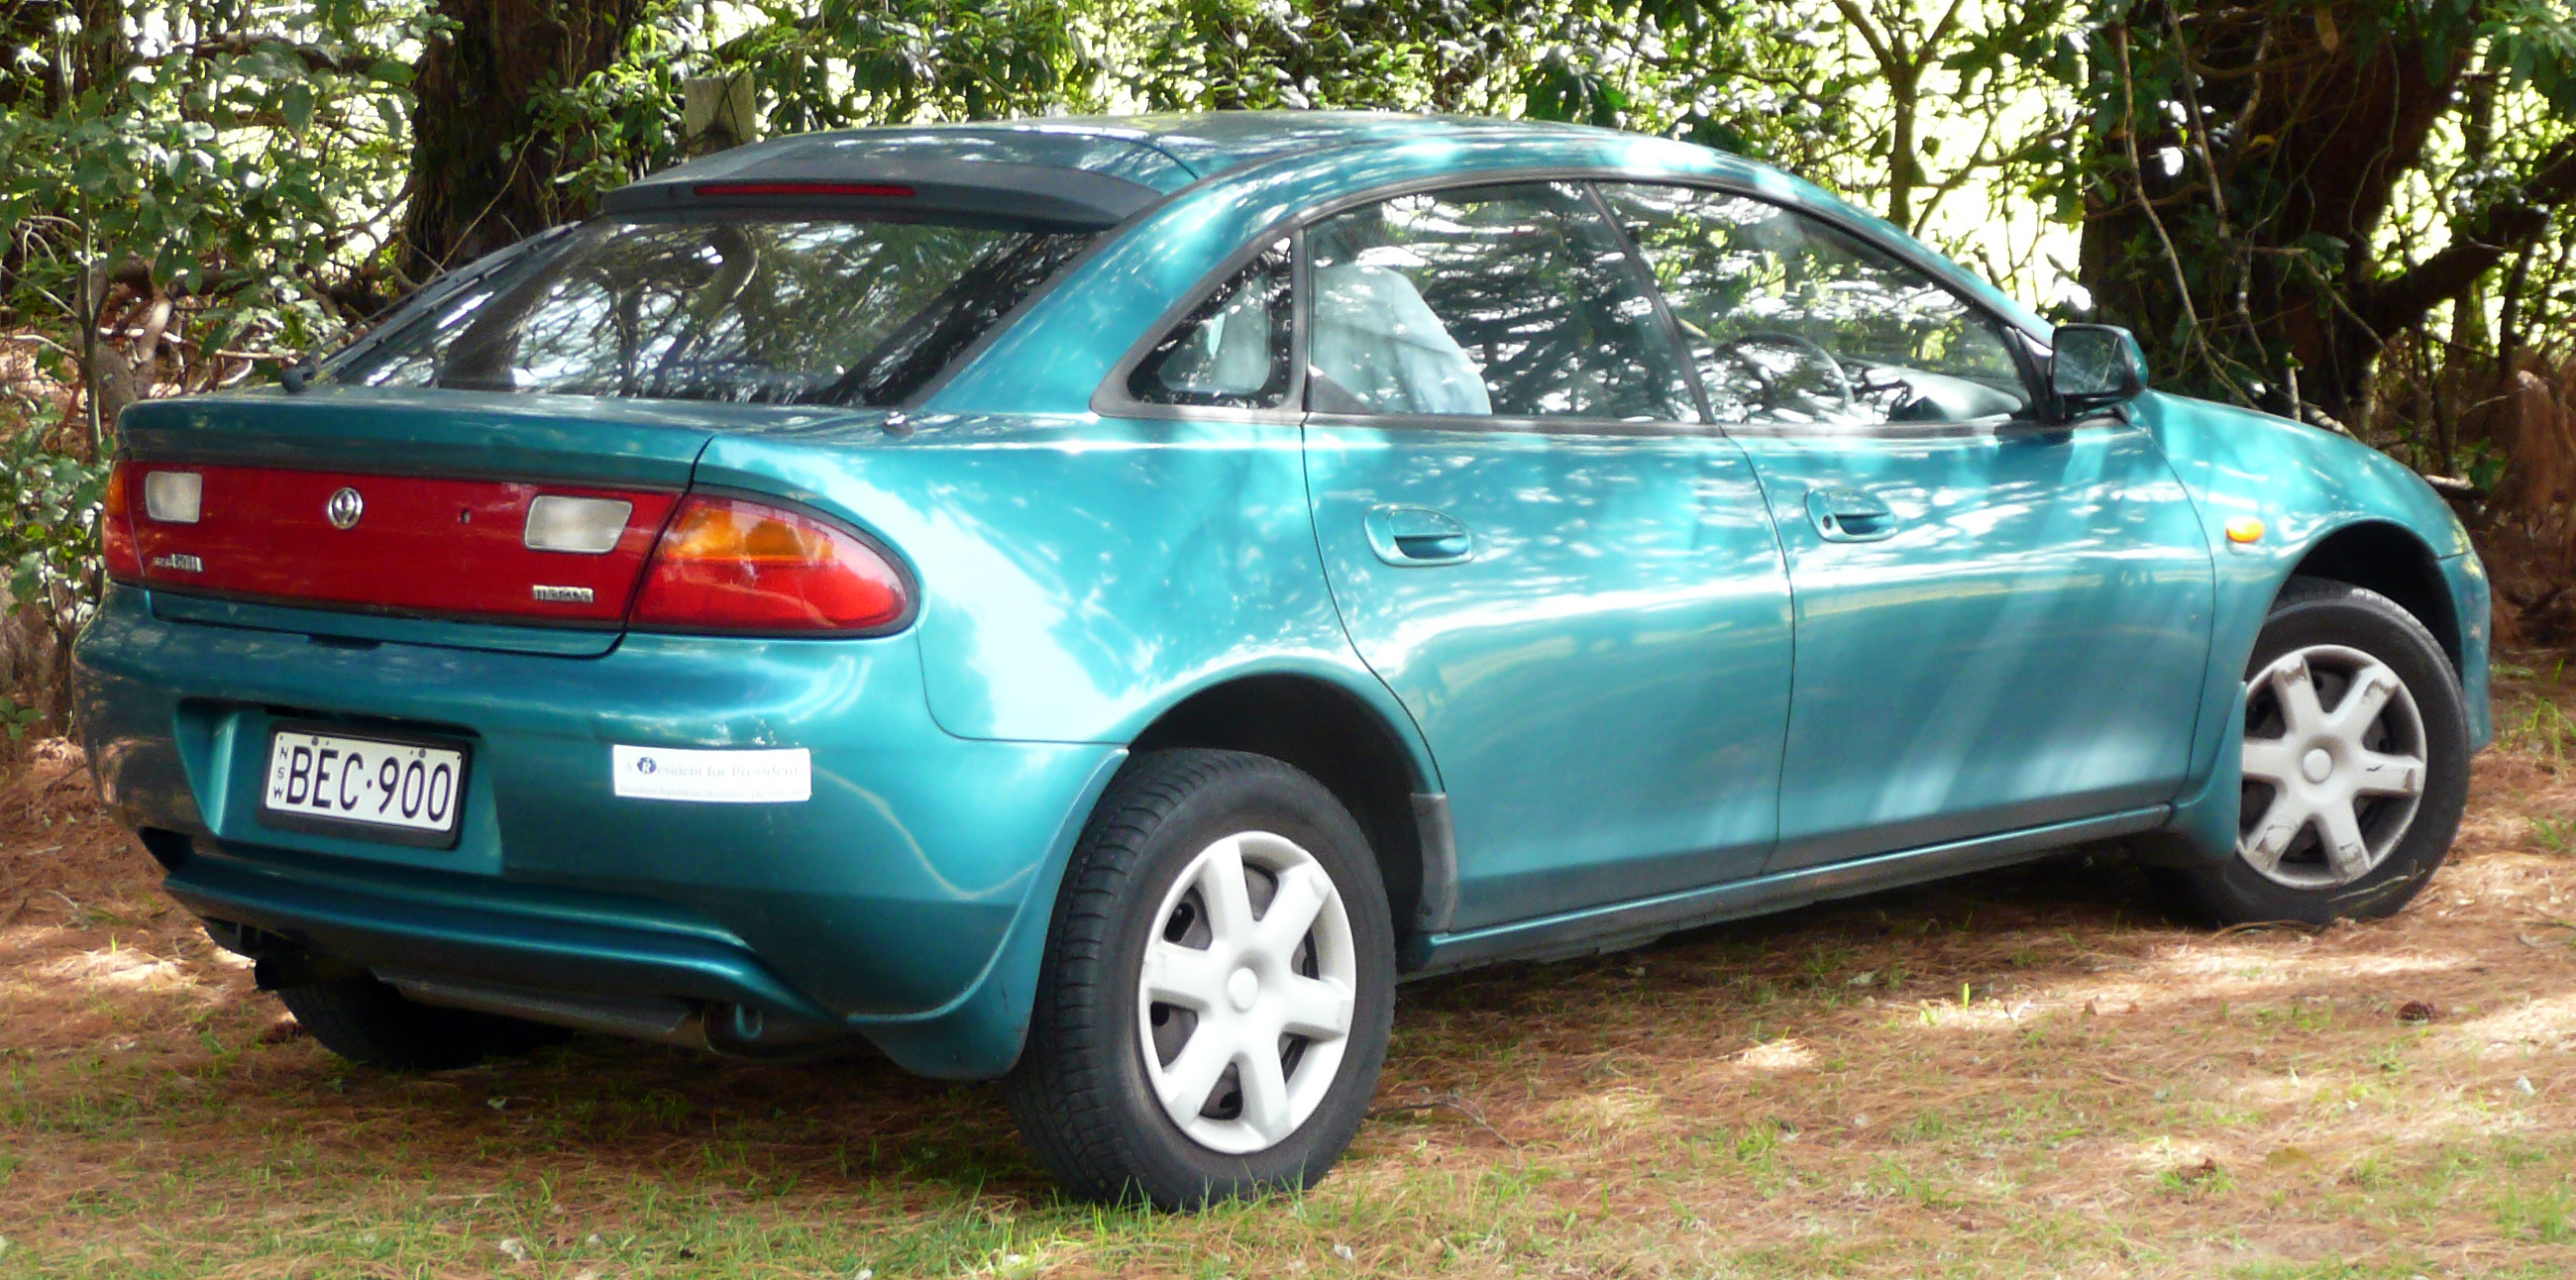 File:1997 Mazda 323 (BA Series 3) Astina 5-door hatchback 01